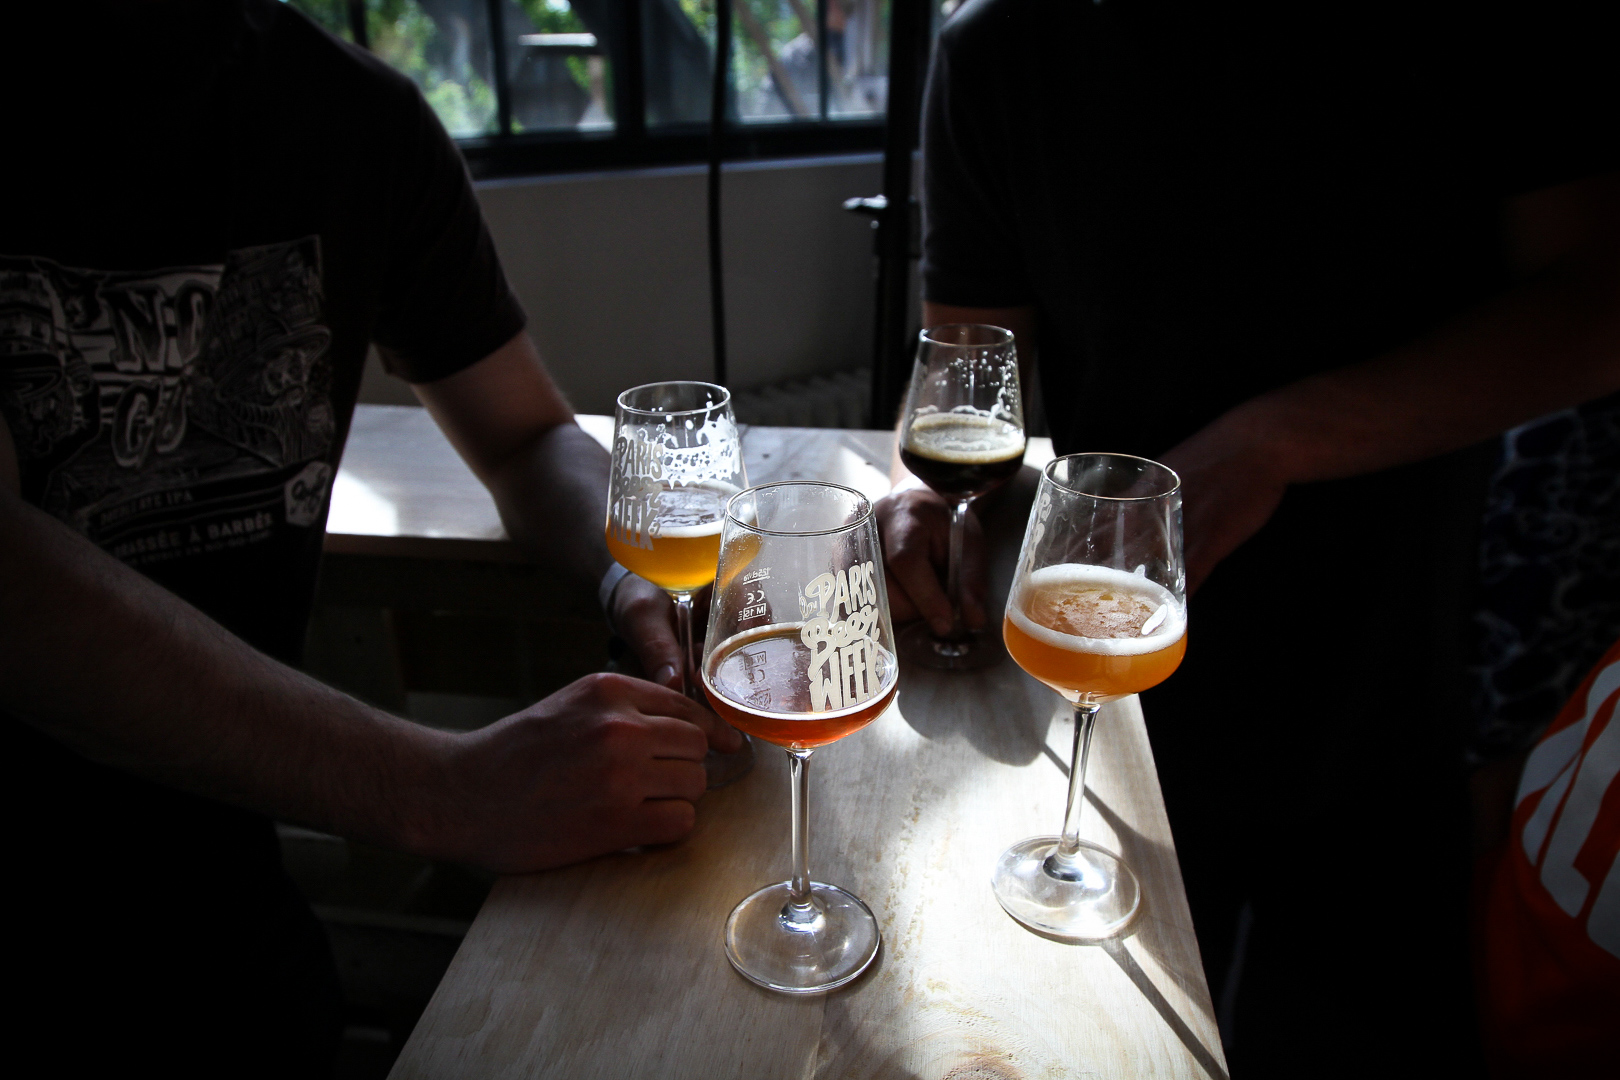 April Events in Paris: Paris Beer Week, Gilles Peterson in Concert, Exhibitions, and More!